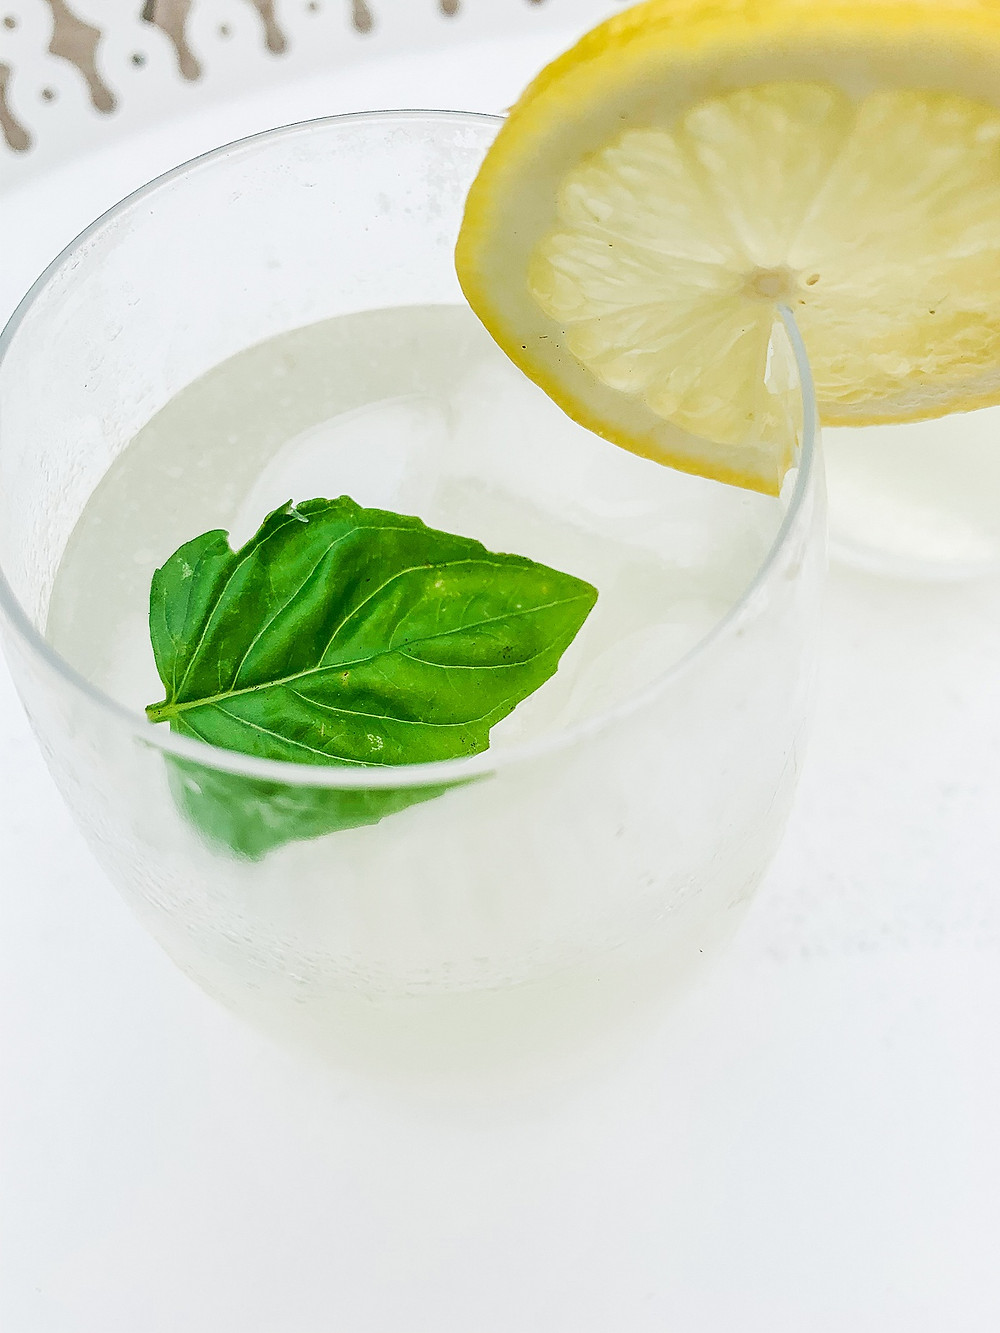 Hydration tips, drink more water, hydration benefits, fruit infused water, healthy recipes, how to drink more water, fruit and herb pairings, food blog, the rural legend, healthy tips, healthy living tips, healthy eating tips, soda substitutions, hydration ideas, infused water, flavored water, flavored water recipes, drink recipes, healthy drink recipes, lemon basil peppercorn